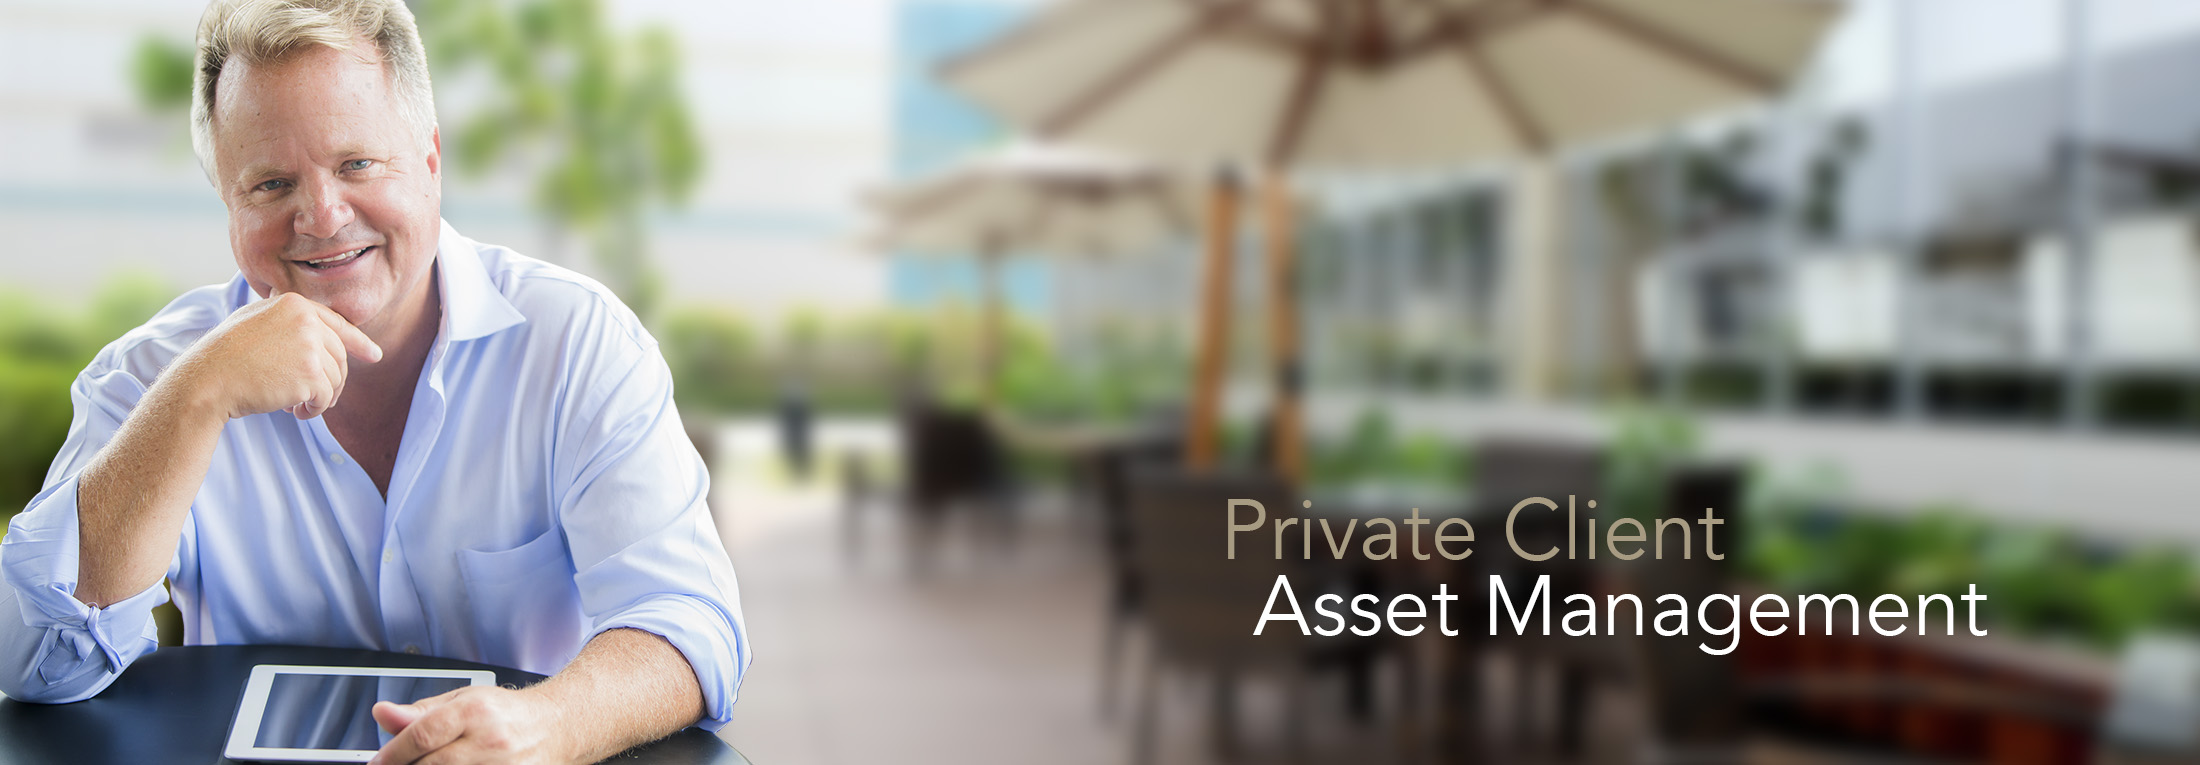 private client asset management